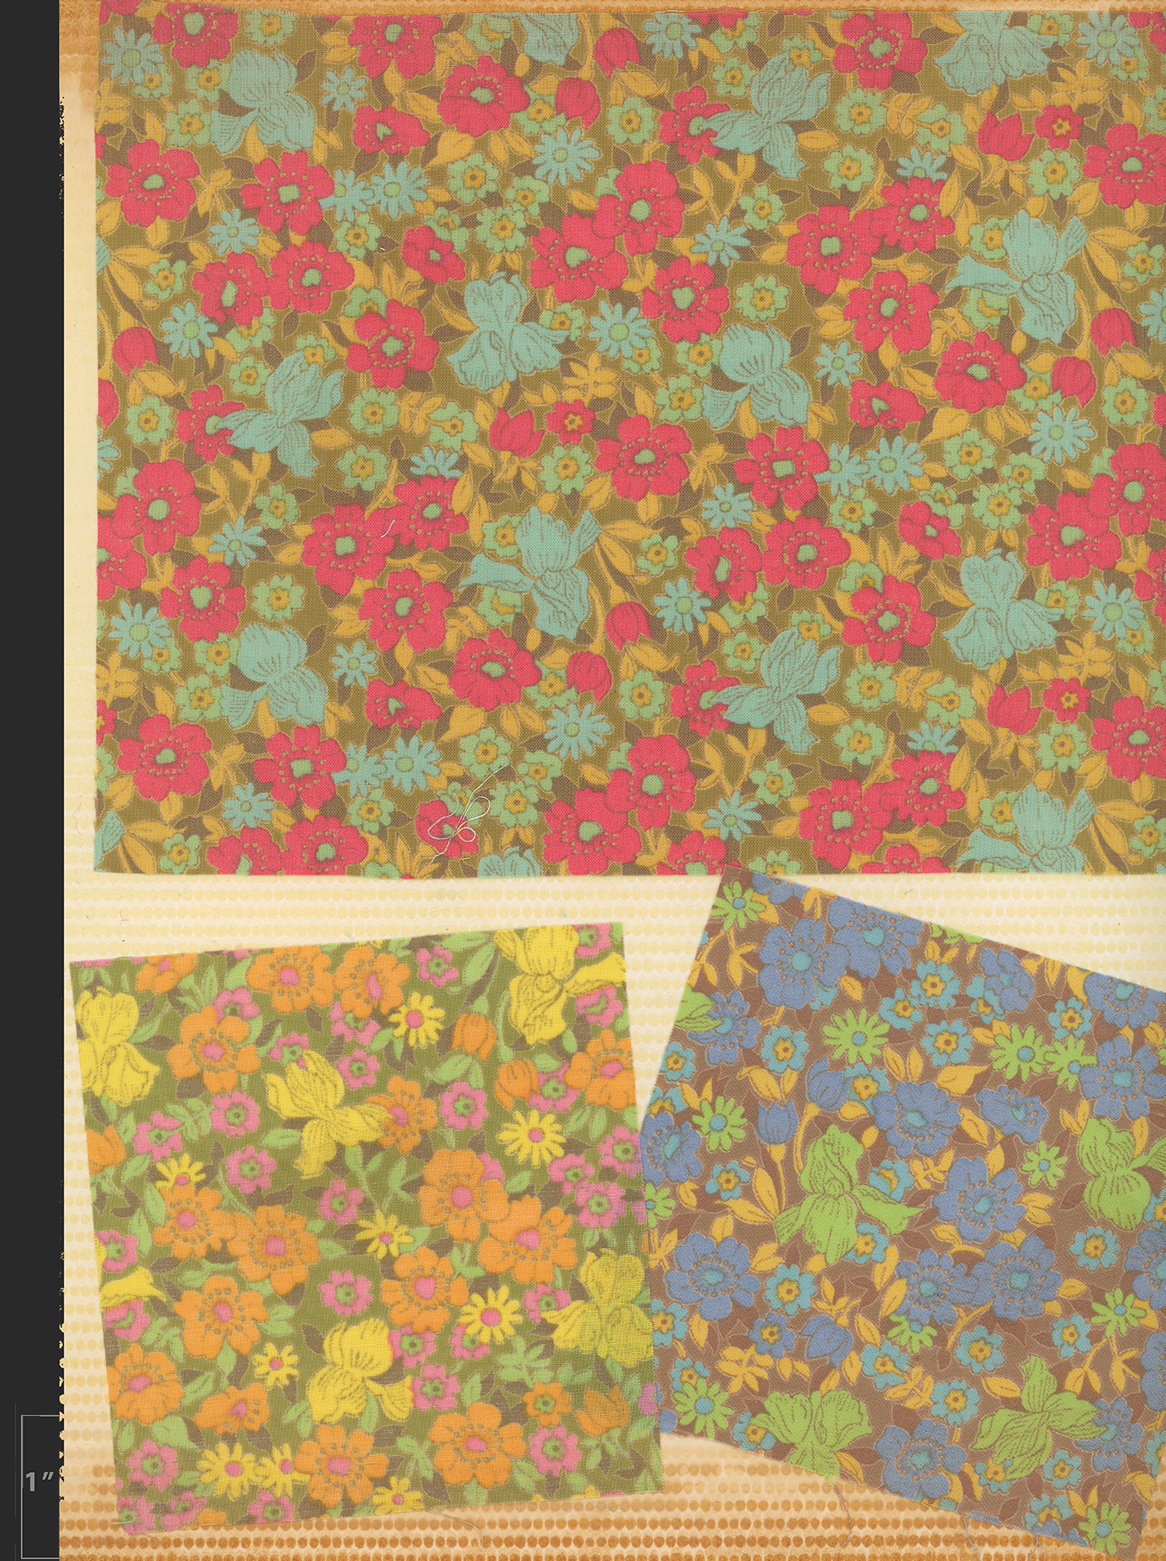 Marielle Bancou Segal colorways of printed textile design for The Villager 1960s full 3 Drexel Digital Museum 14F